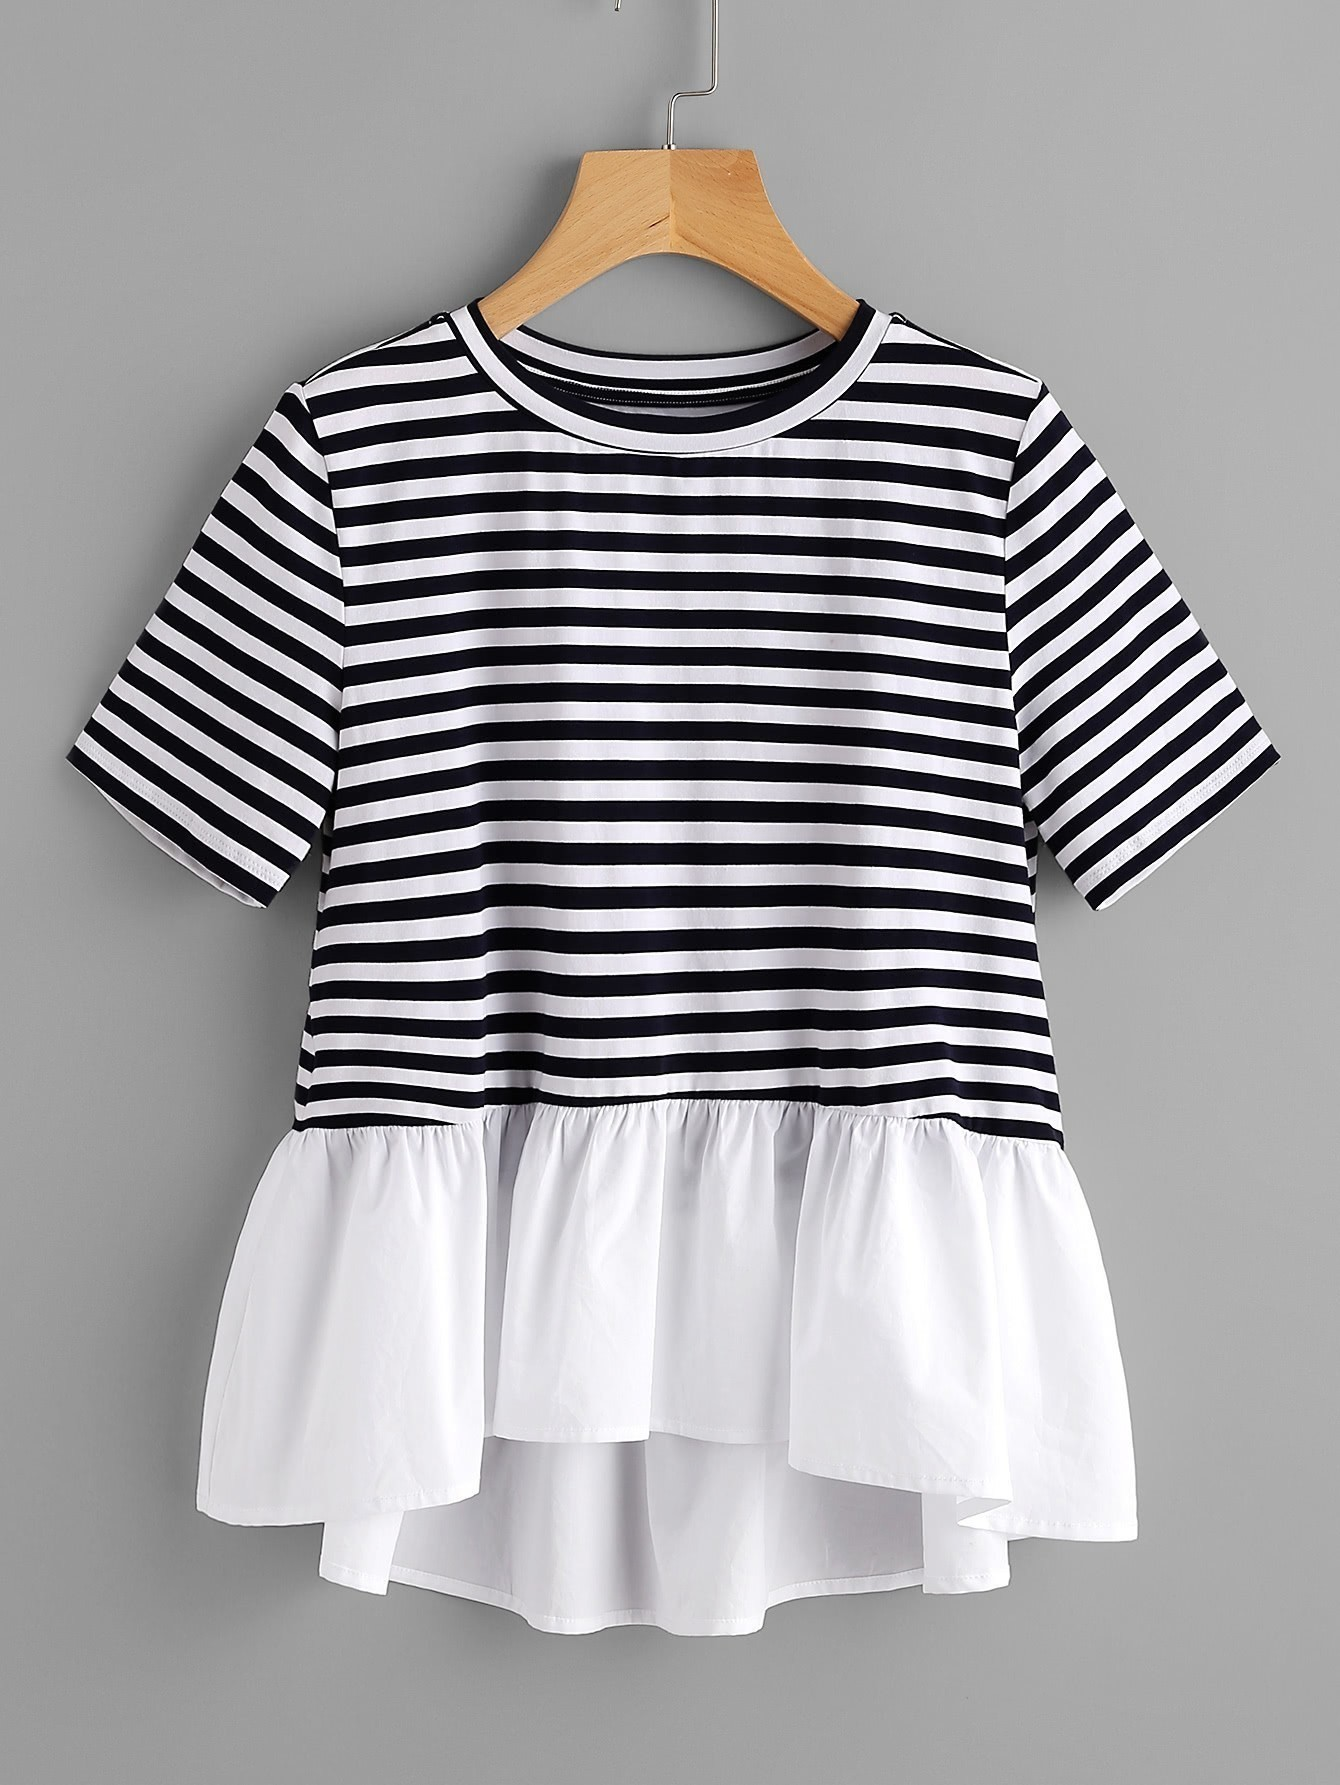 Contrast Frill Trim Striped Tee contrast trim ribbed tee with striped shorts